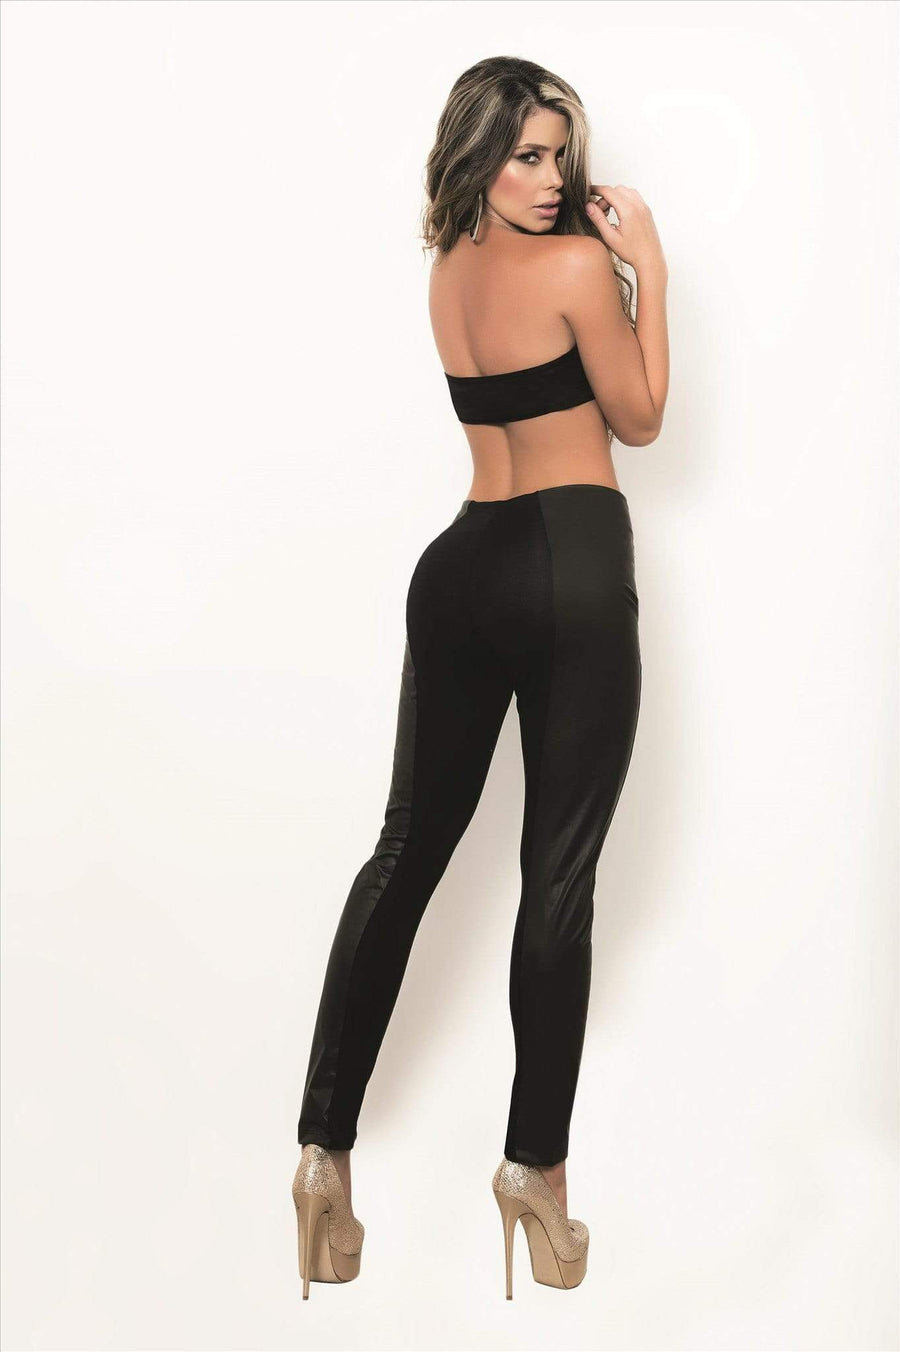 AMPM Large / Black Black Leggings featuring a Gold Accent Zippers AMPM-1828-L Apparel & Accessories > Clothing > Pants